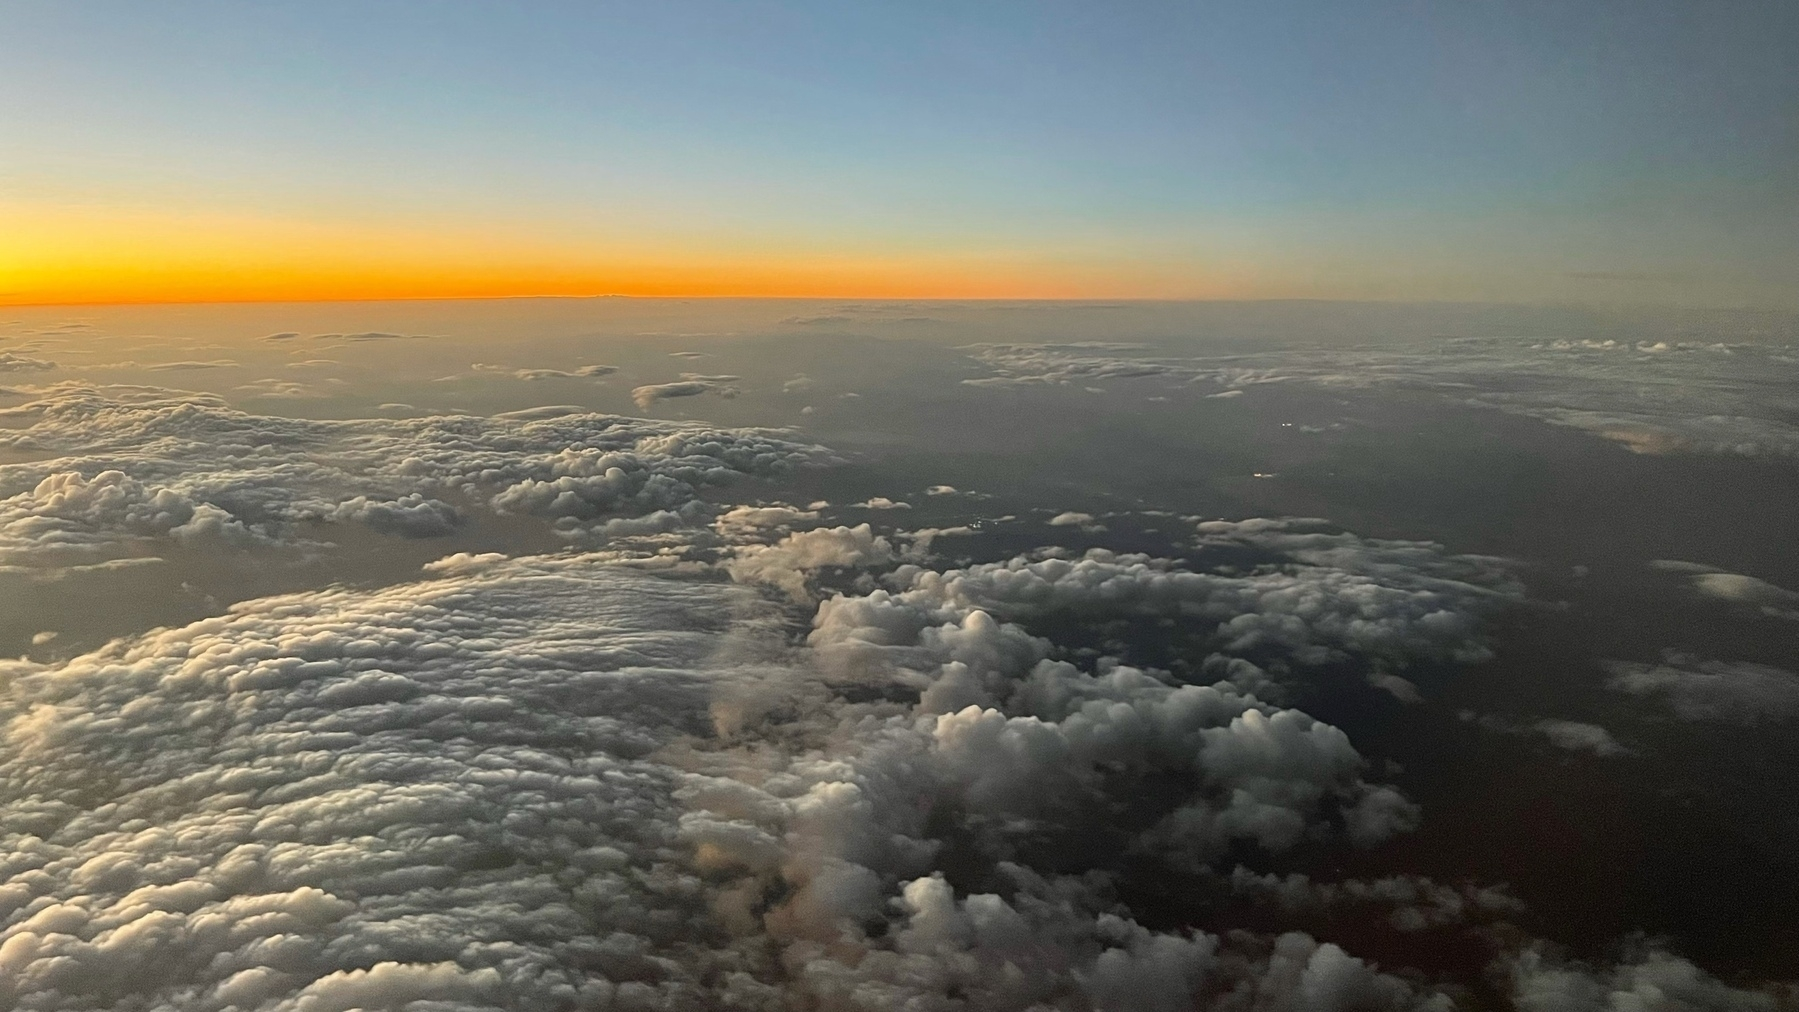 view out an aiplane window at sunset with clouds and an orange ribbon at the horizon